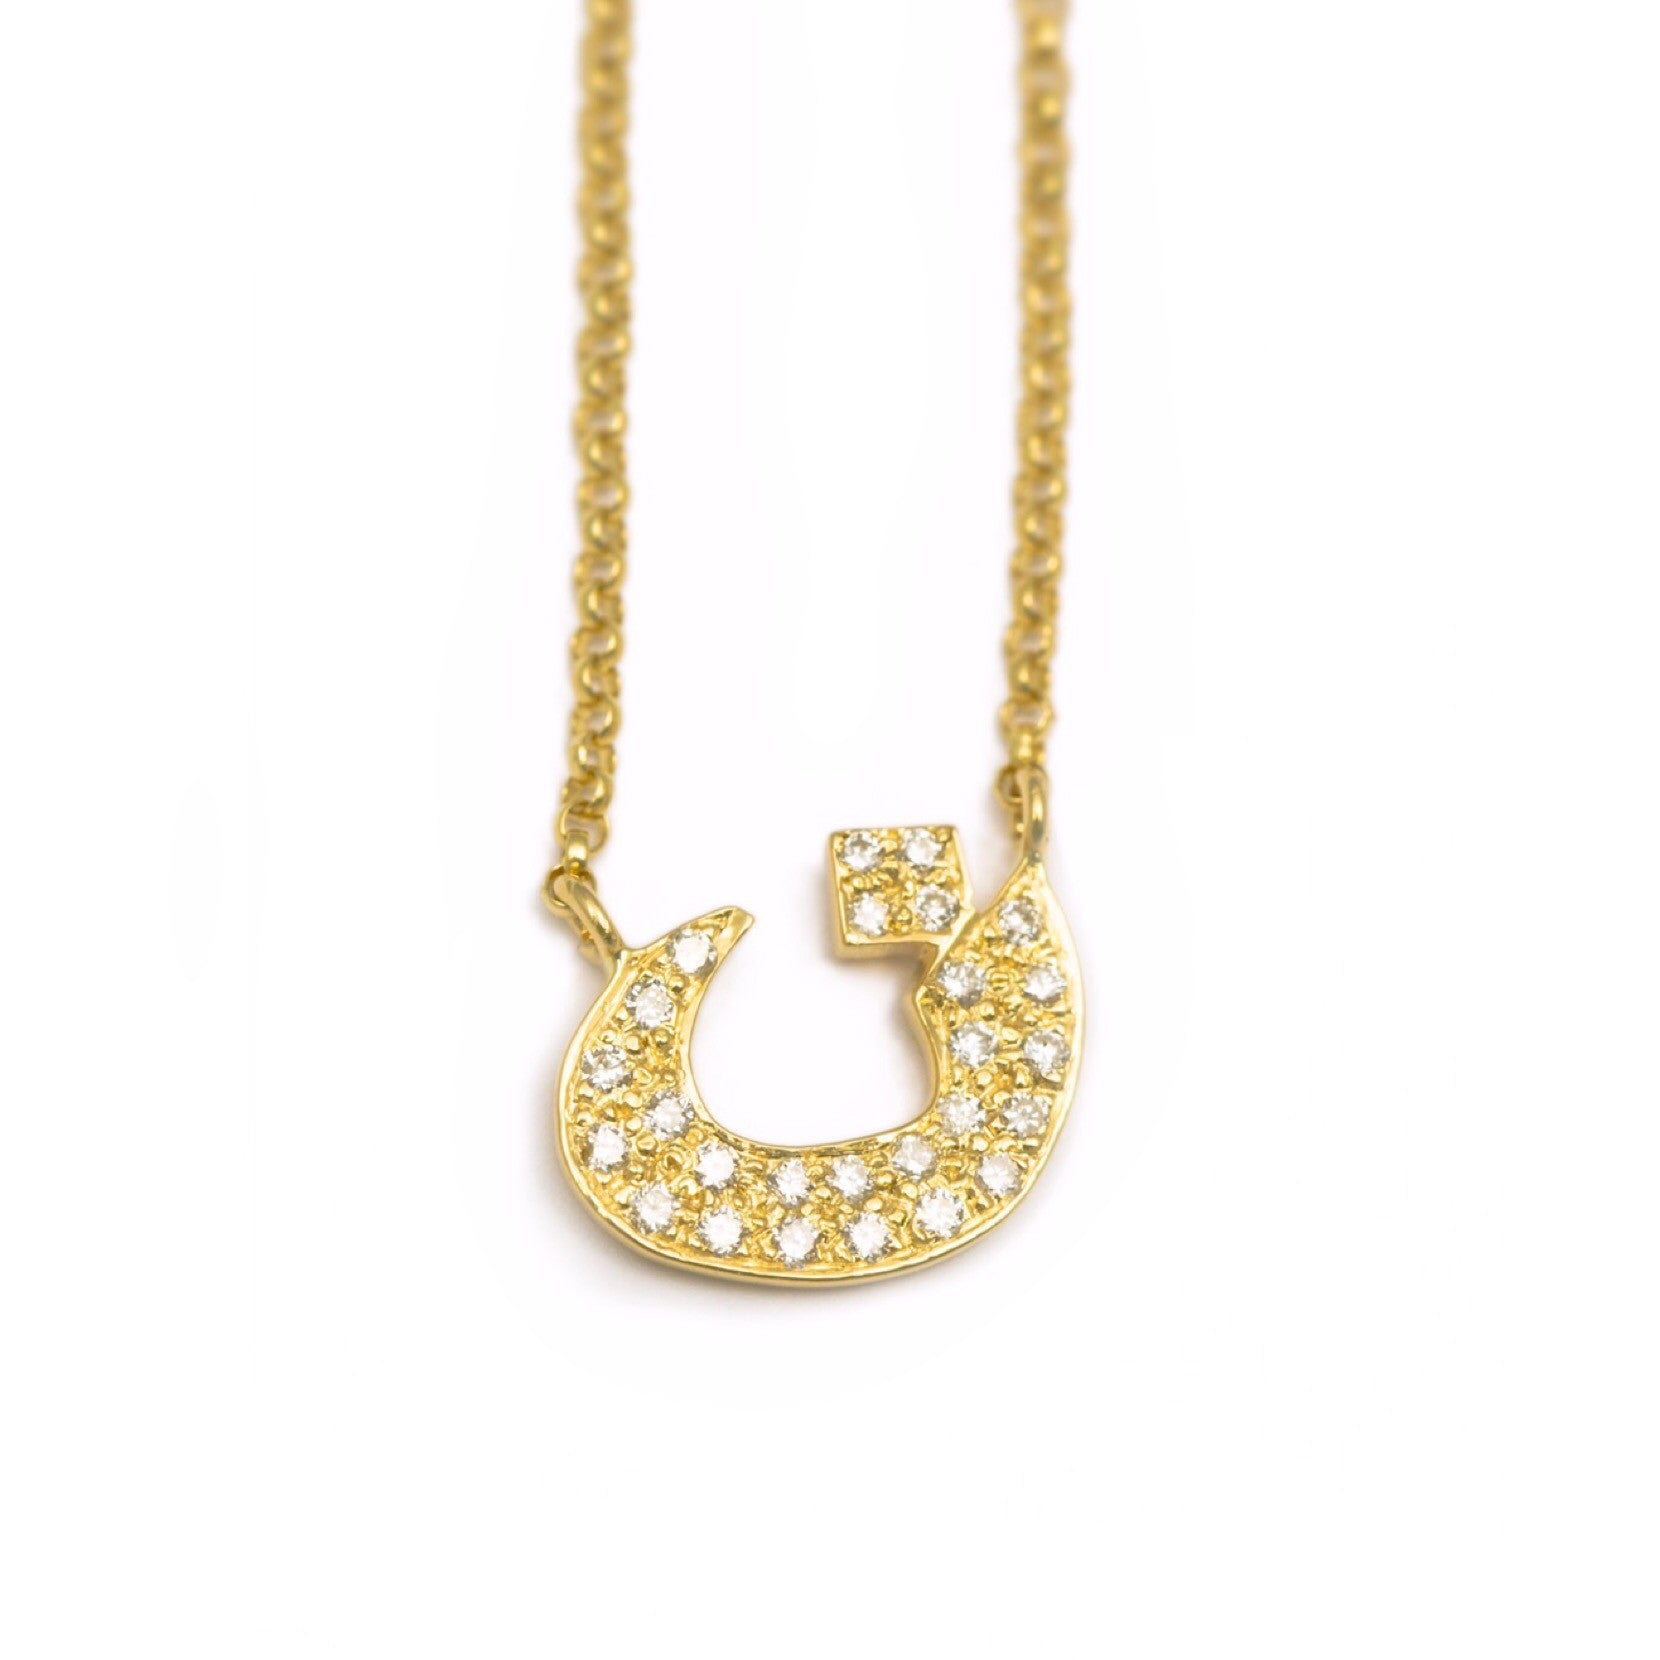 Bil Arabi 18k Pave Necklace